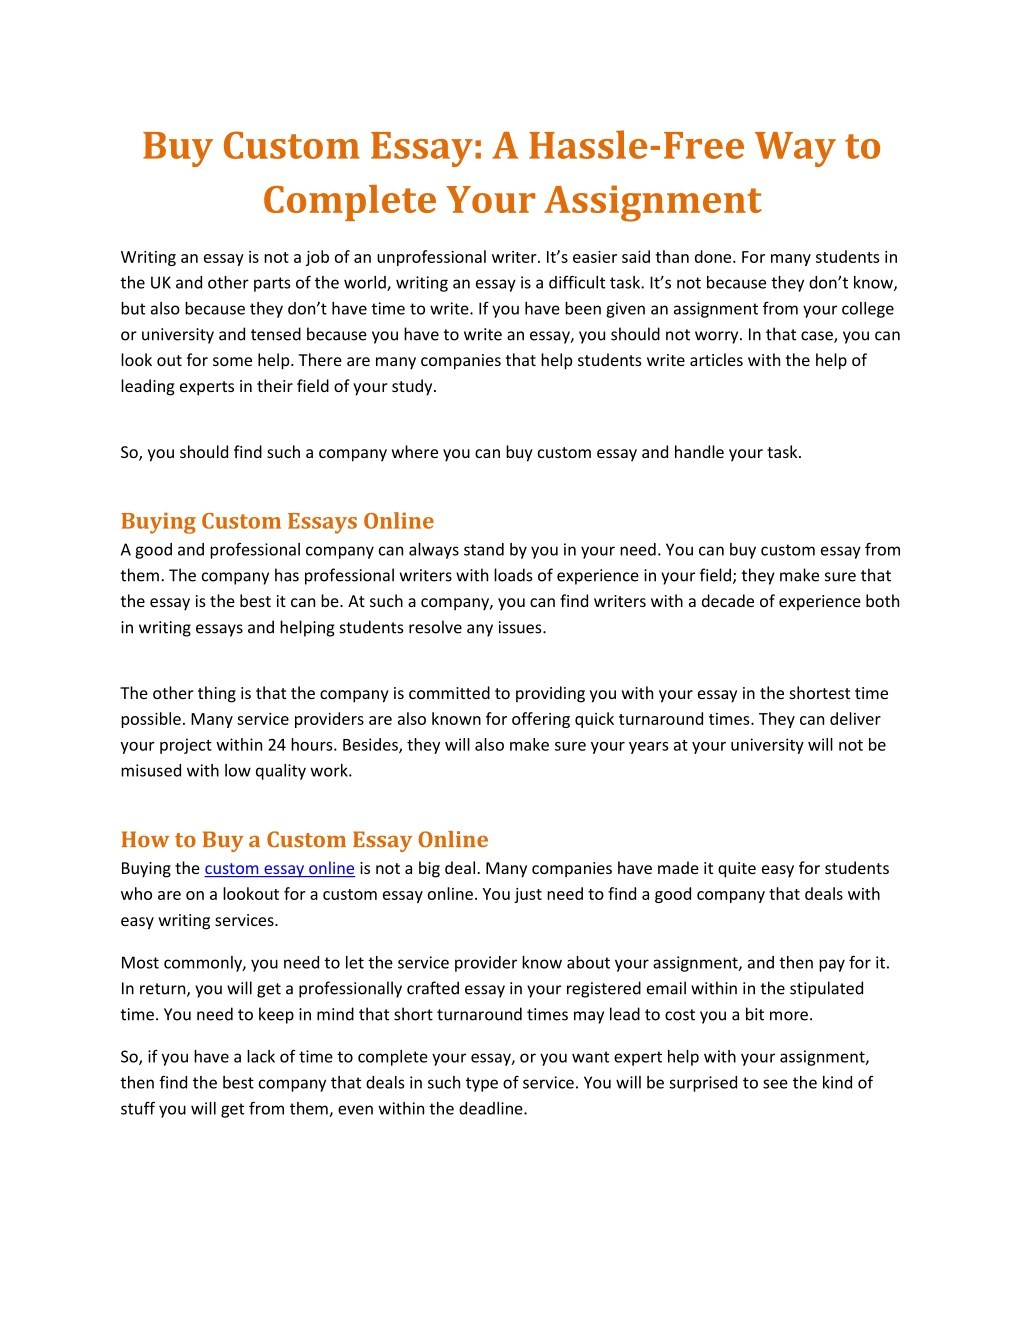 001 Essay Example Custom Order Buy Hassle Free Way To Complete Frightening Large